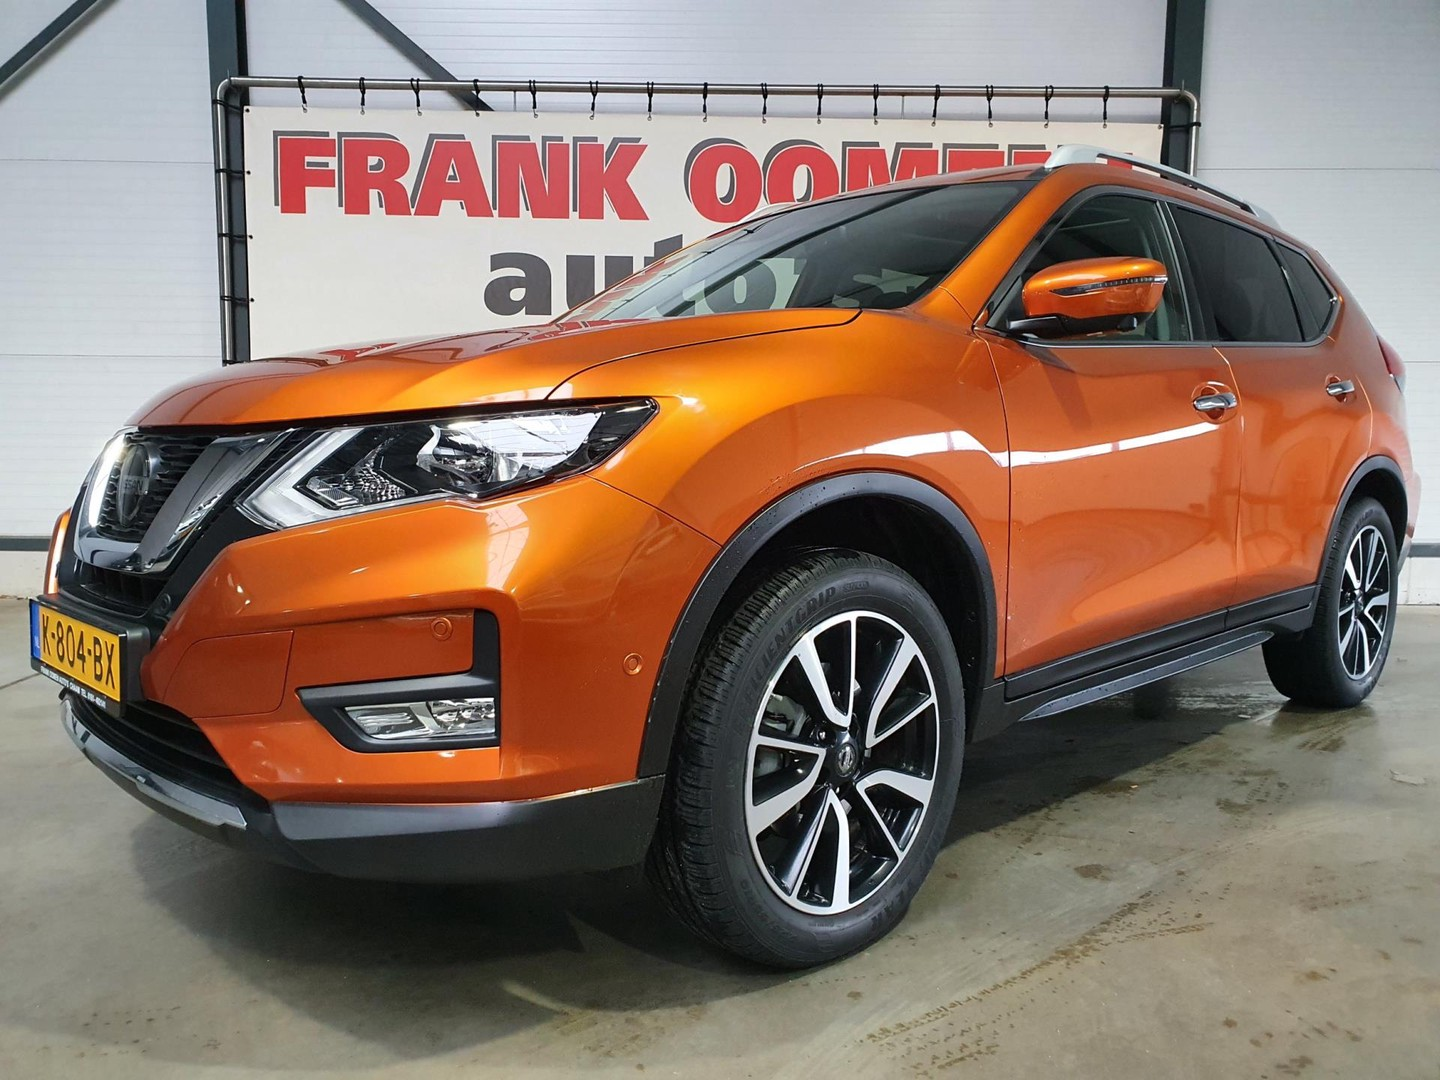 "Nissan X-trail 1.3 dig-t 159pk n-connecta 7pers. + navi/panorama/camera/pdc/bluetooth/clima/cruise/19""lmv"